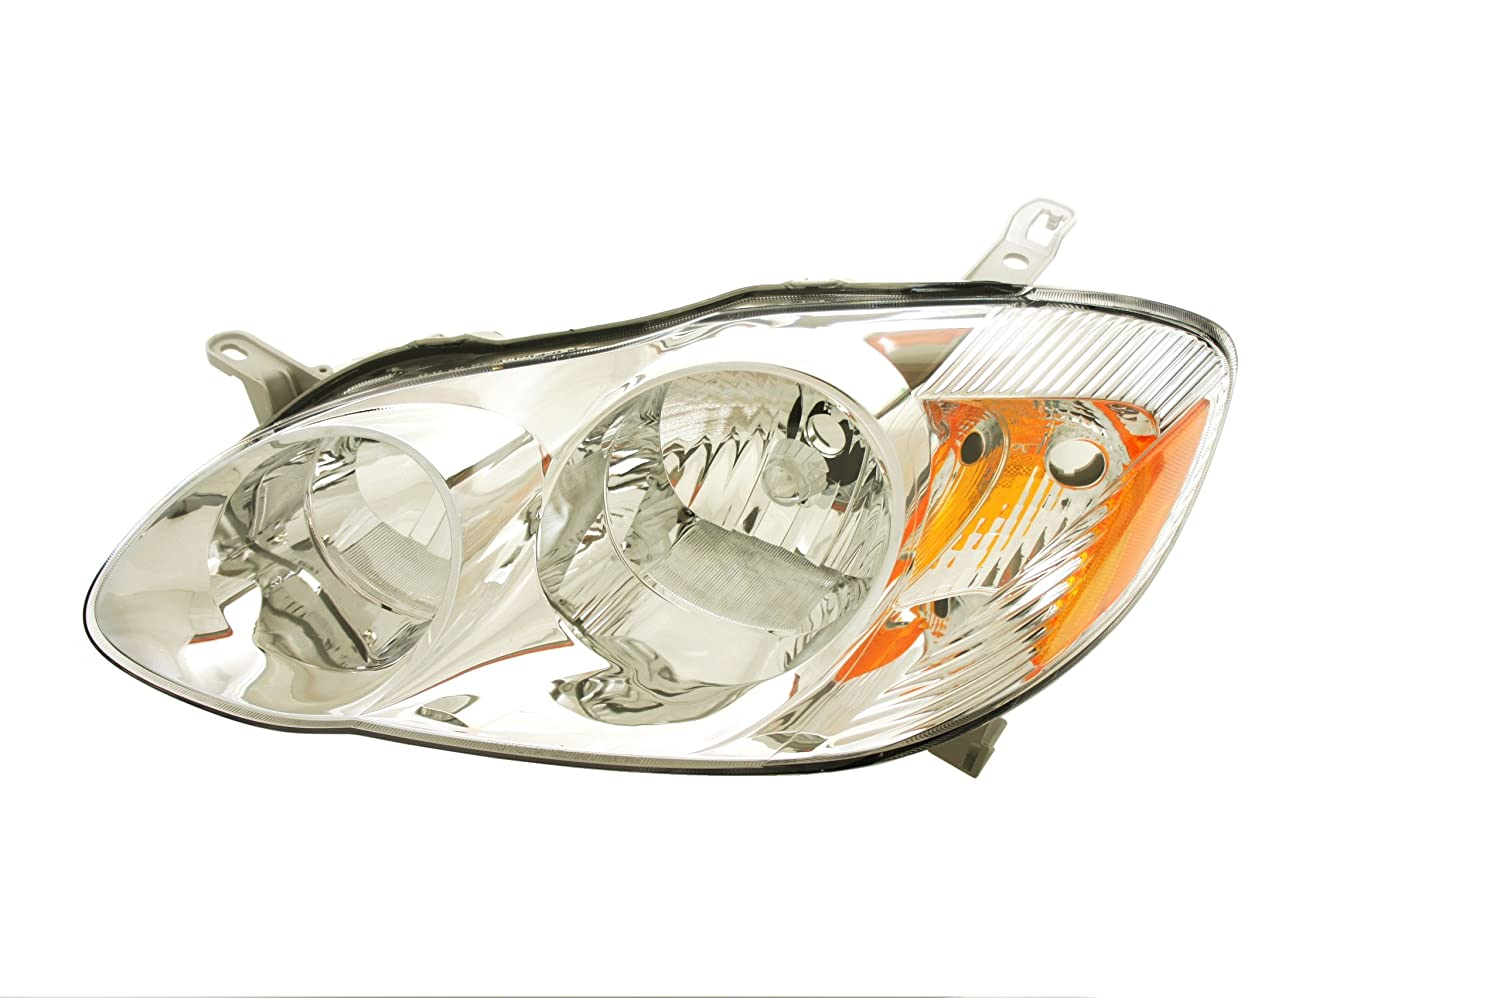 Toyota Genuine Parts 81170-02200 Driver Side Headlamp Lense and Housing